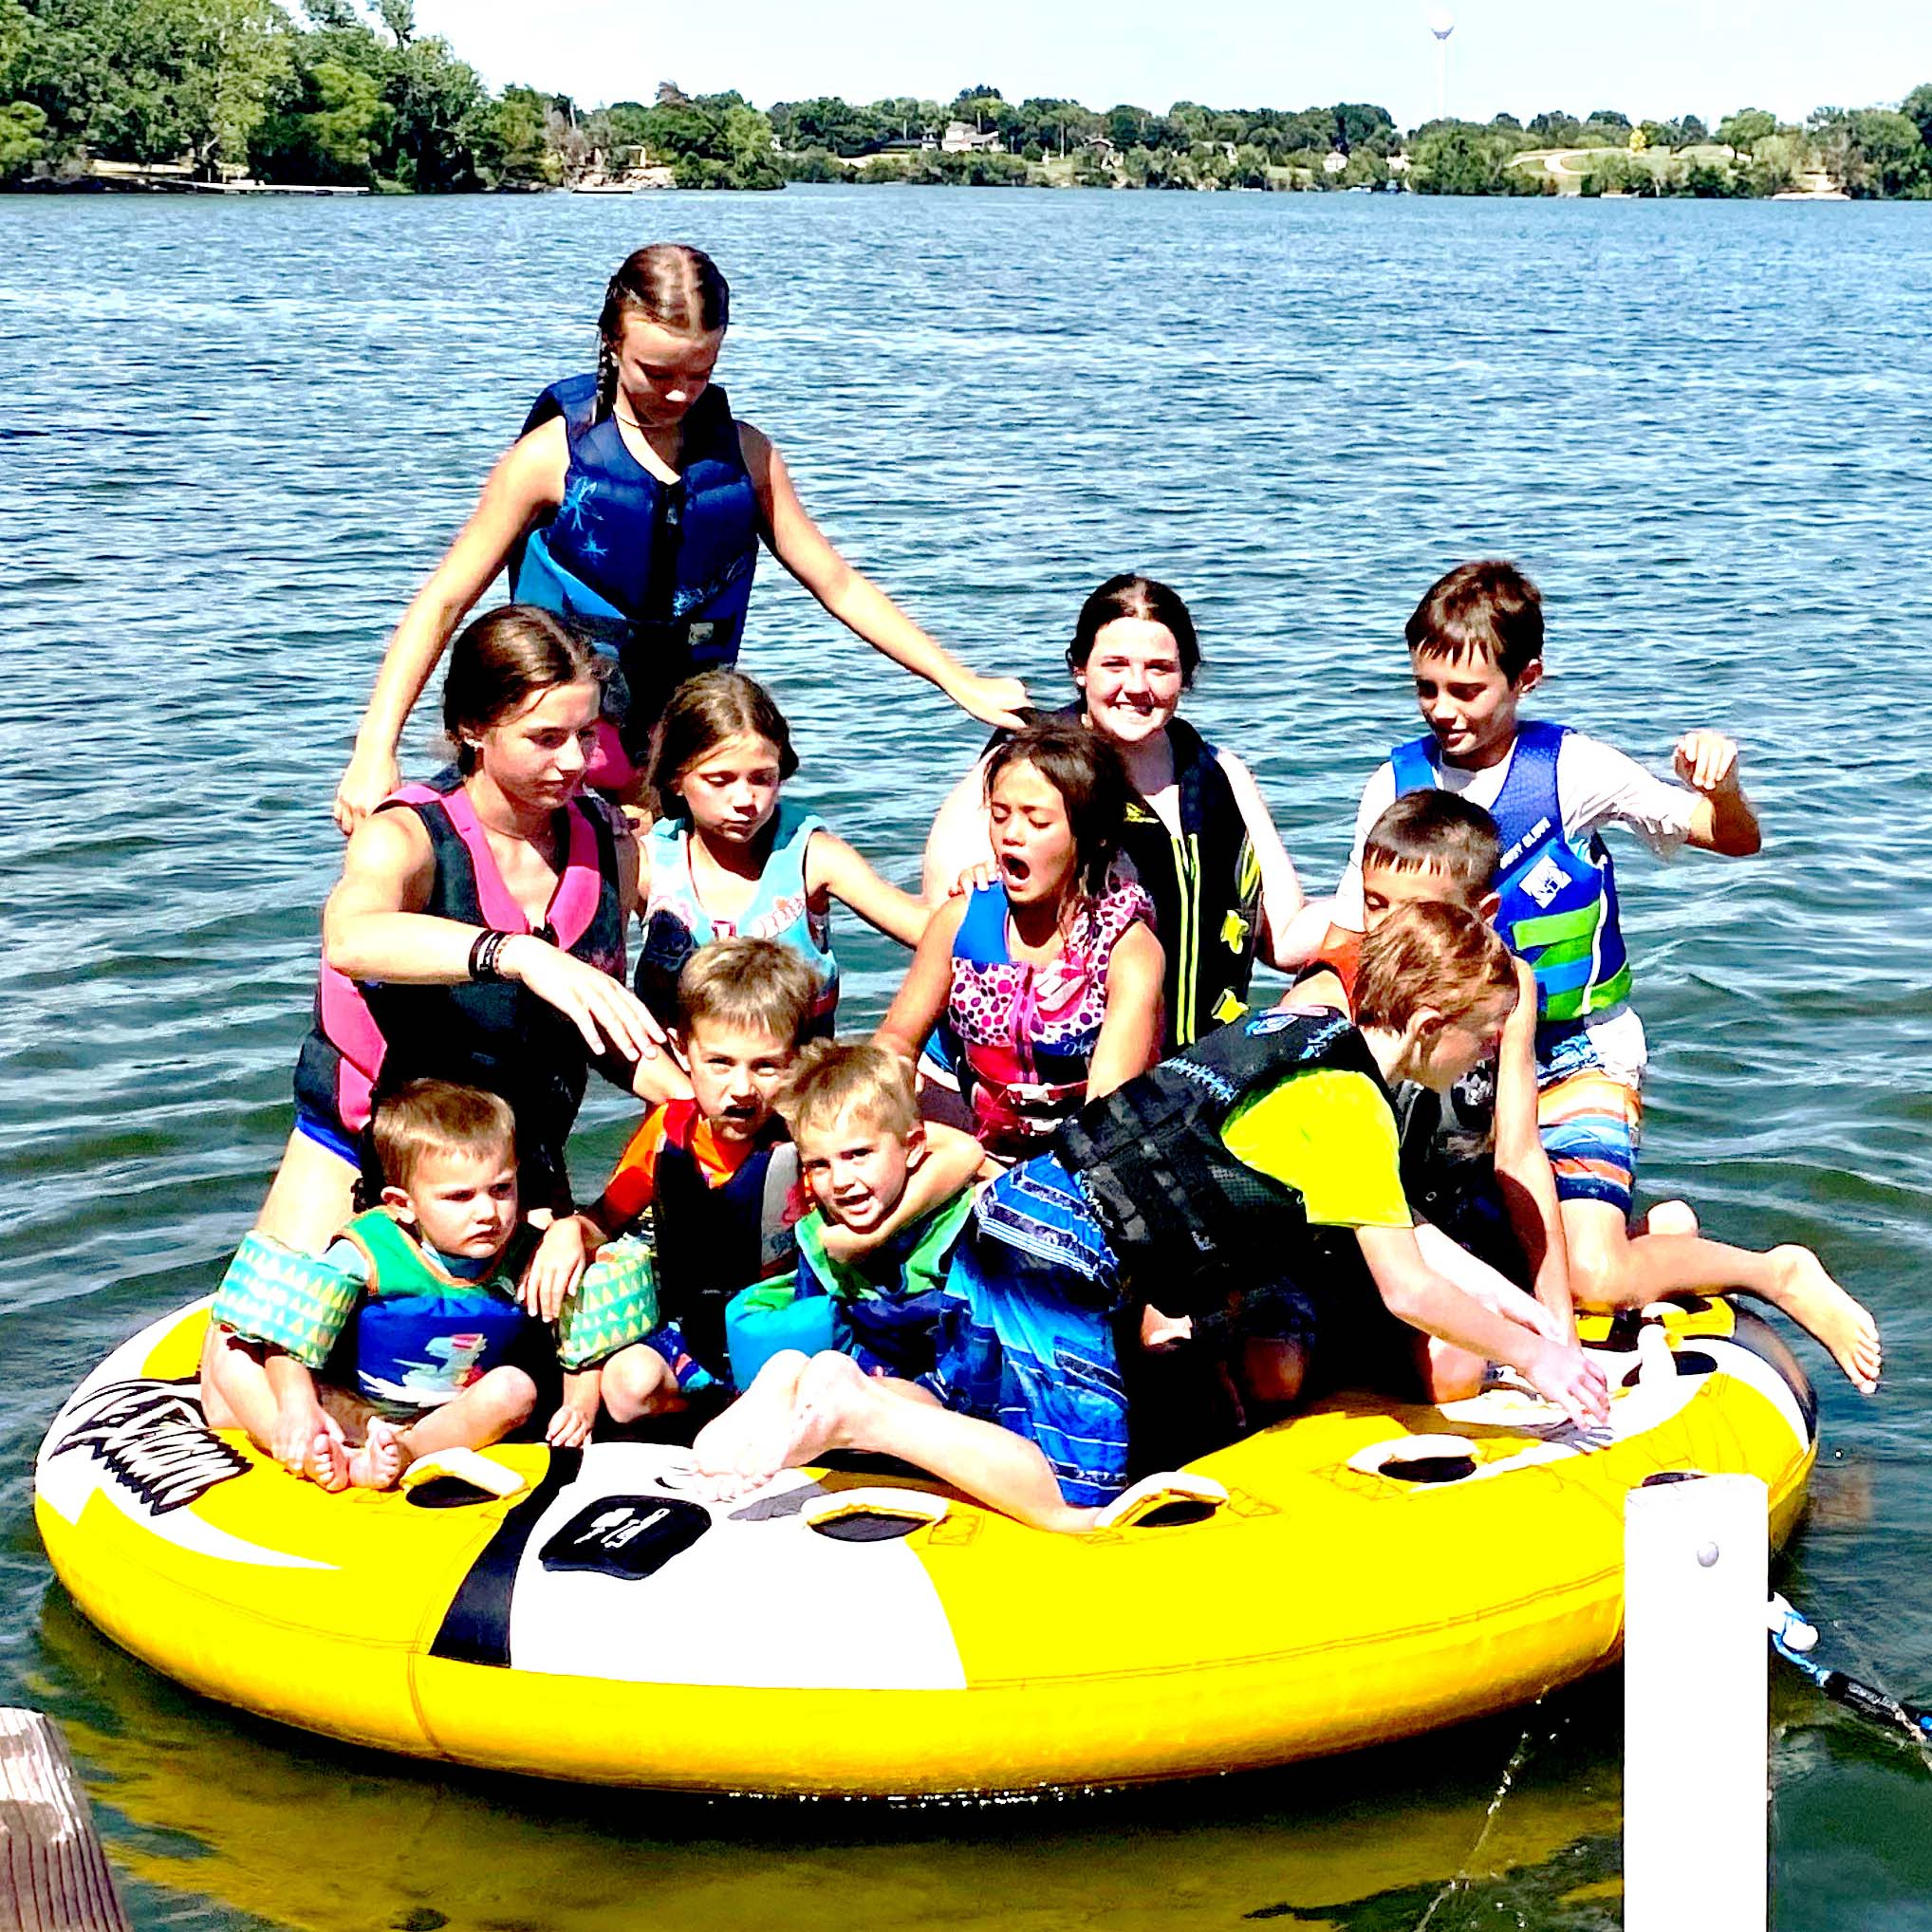 Marion Elementary student Sara Groening (foreground) ponders a spelling before Haley Kraus (background) won the school's spelling bee Friday. Maria Carlson finished just behind them in third place. Also participating were Logan Amos, Cooper Bailey, Harrison Beery, Isaac Bouslog, Maria Carlson, Caleb Darrow, Clark Felvus, Autumn Haskin, Hailey Harshman, Grace Hett, Taryn Kraus, Autumn Padgett, Kamri Shipman, Gavin Wasmuth, Luke Wessel, and Kylee Wilson.